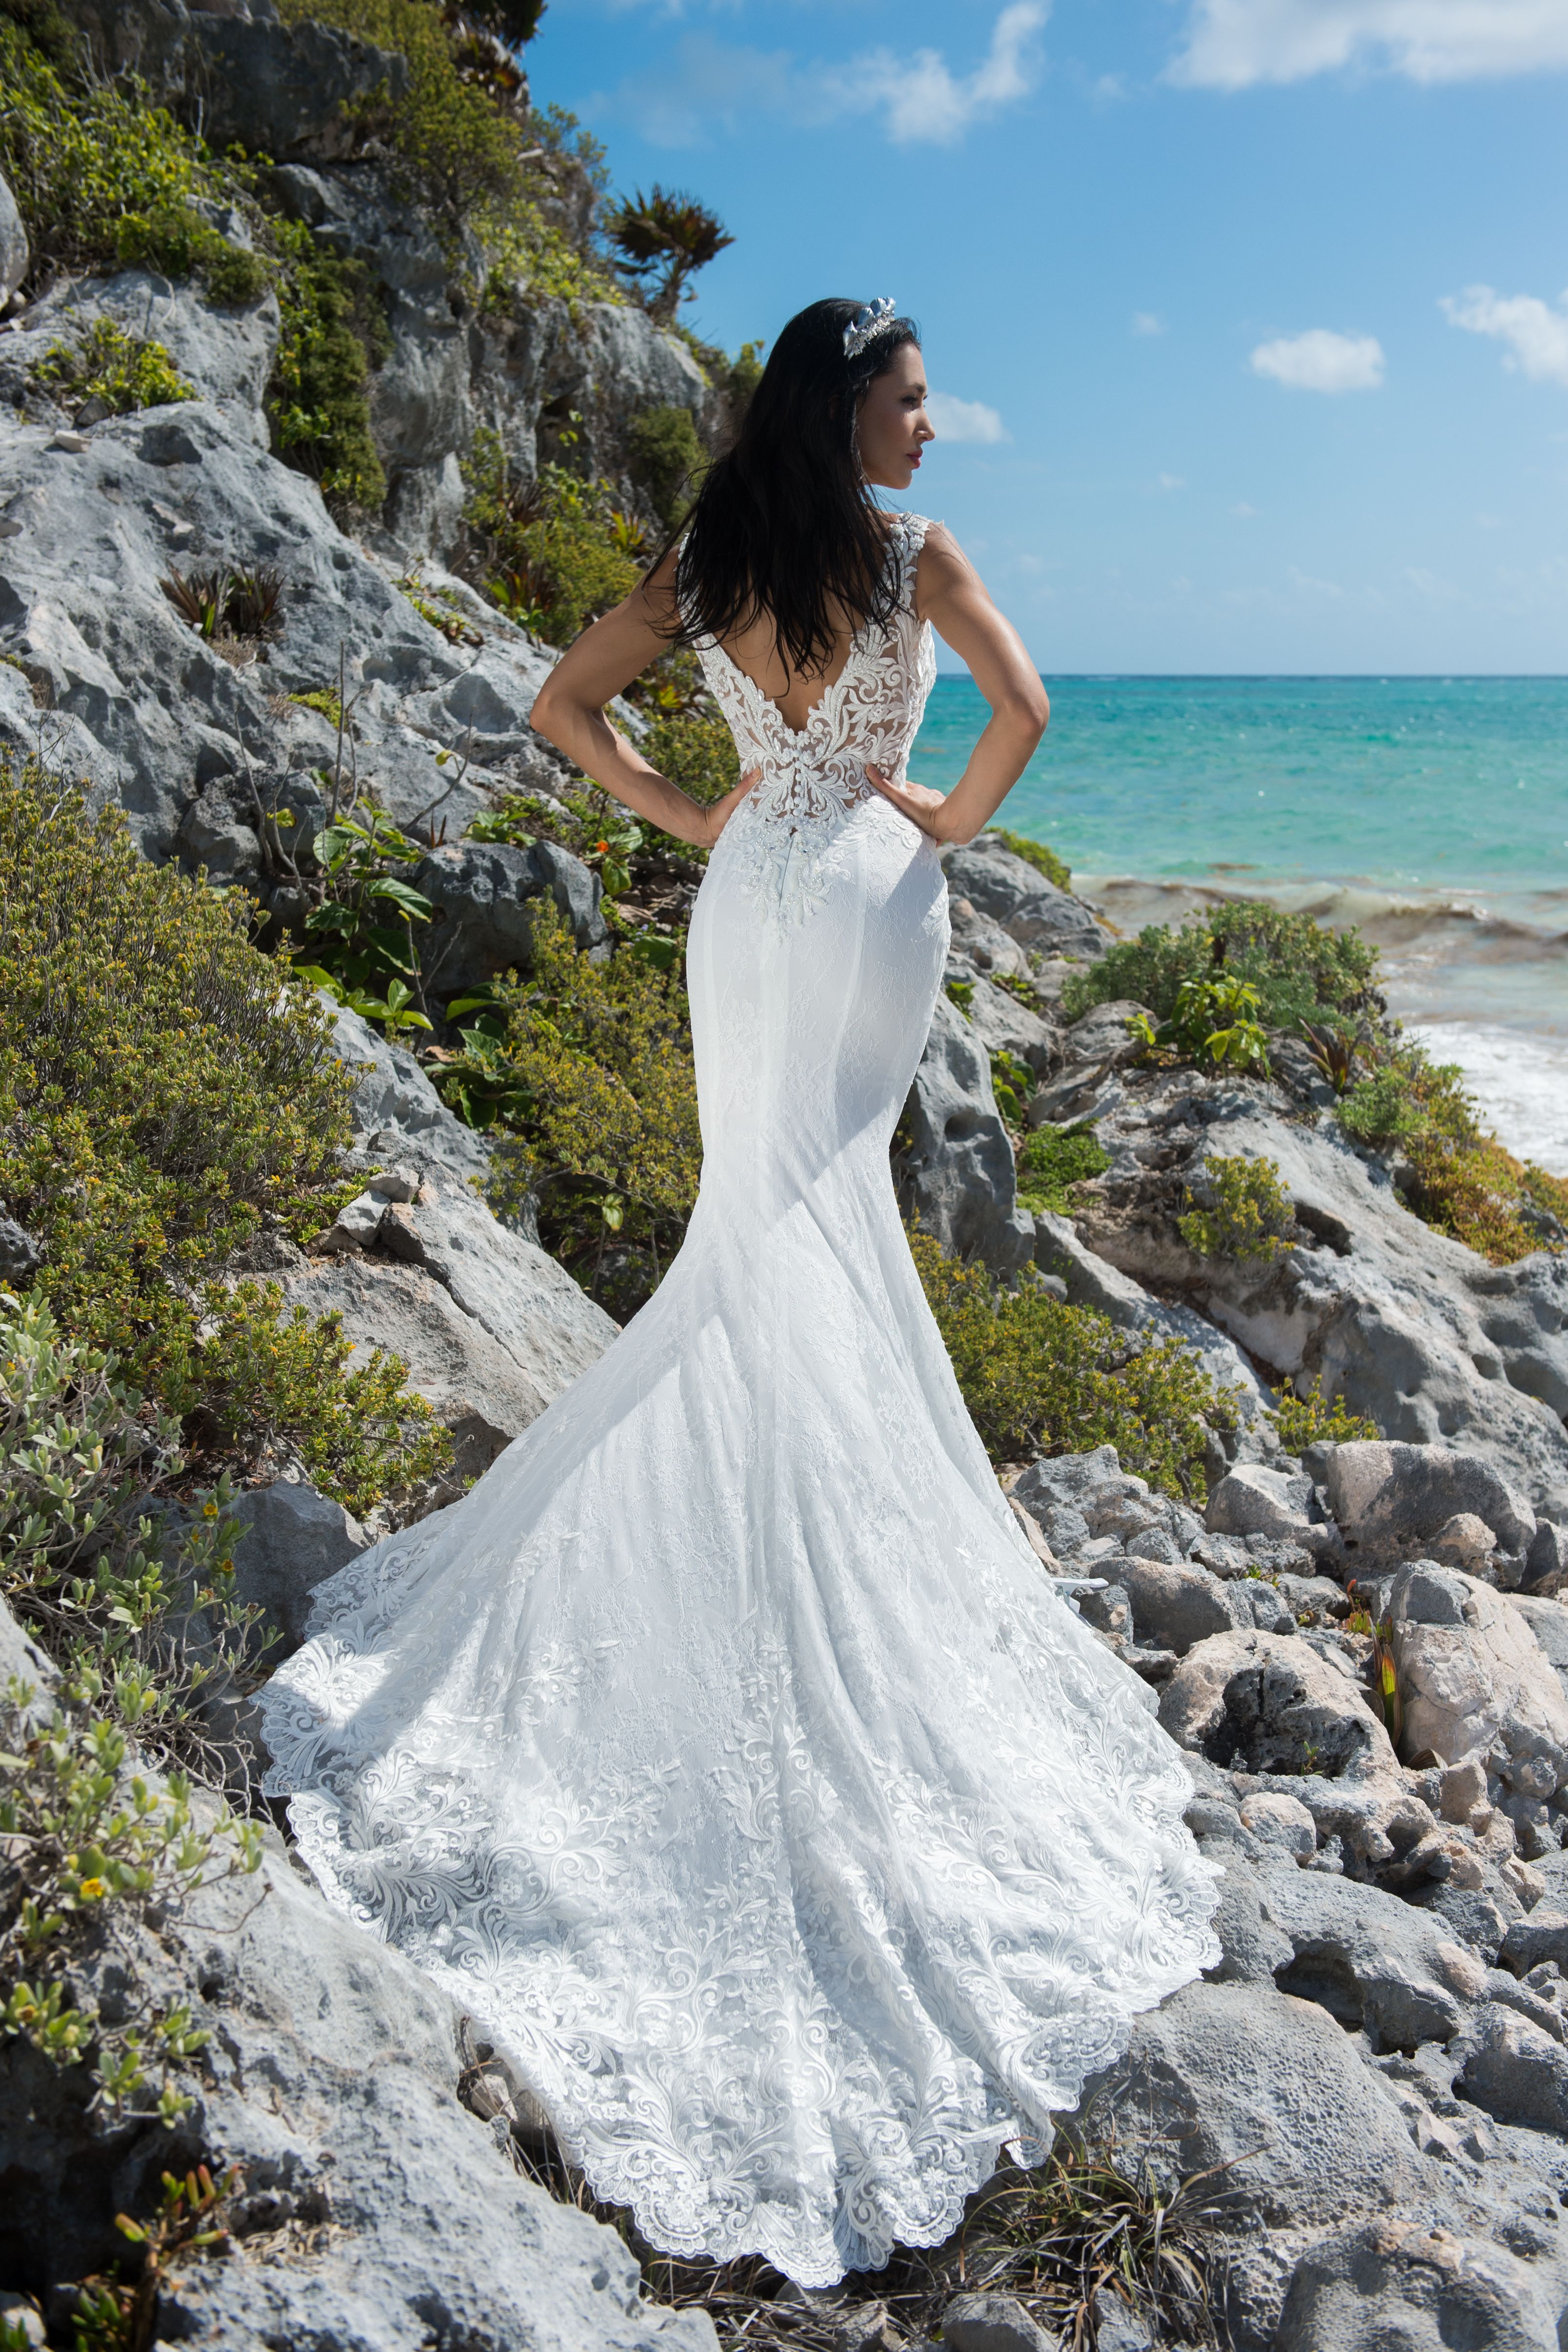 Couture wedding dresses london  East India u Dando London Bridals  OUR WEDDING  Pinterest